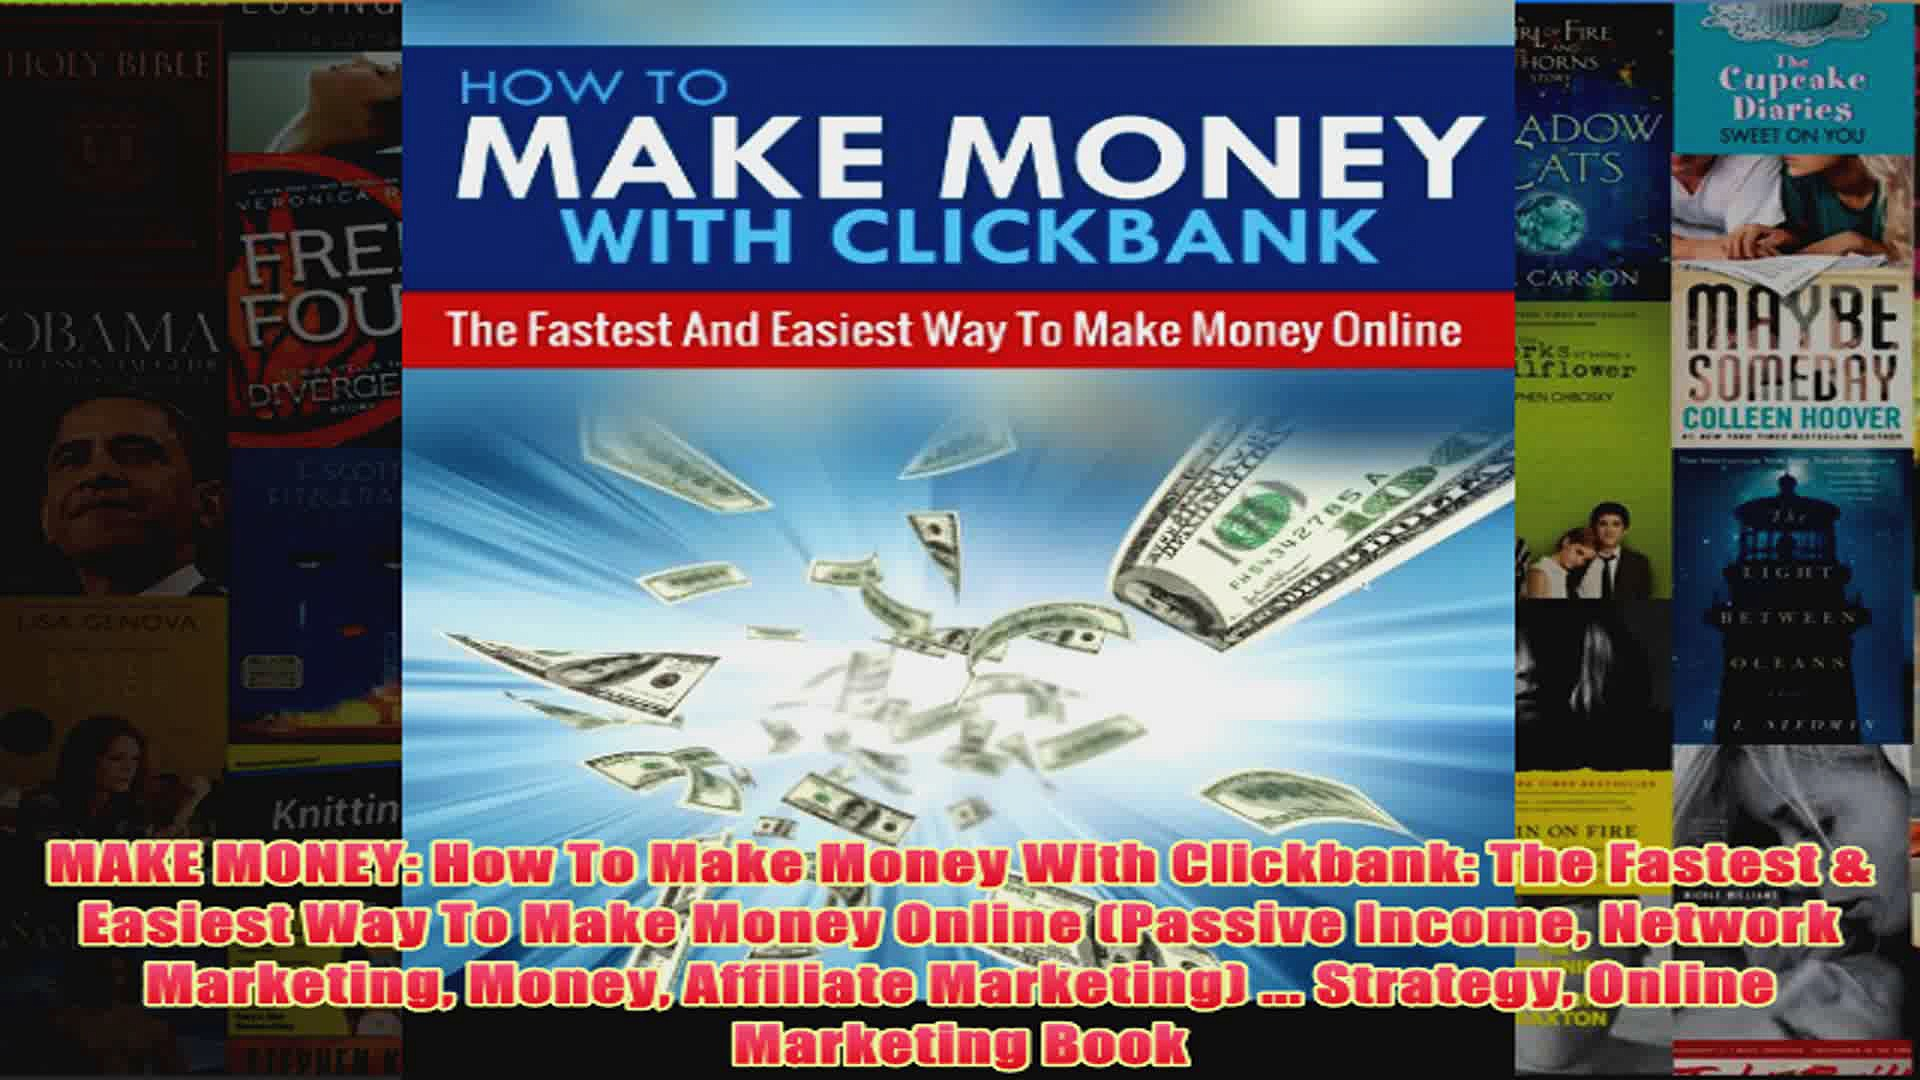 Download PDF  MAKE MONEY How To Make Money With Clickbank The Fastest  Easiest Way To Make Money FULL FREE